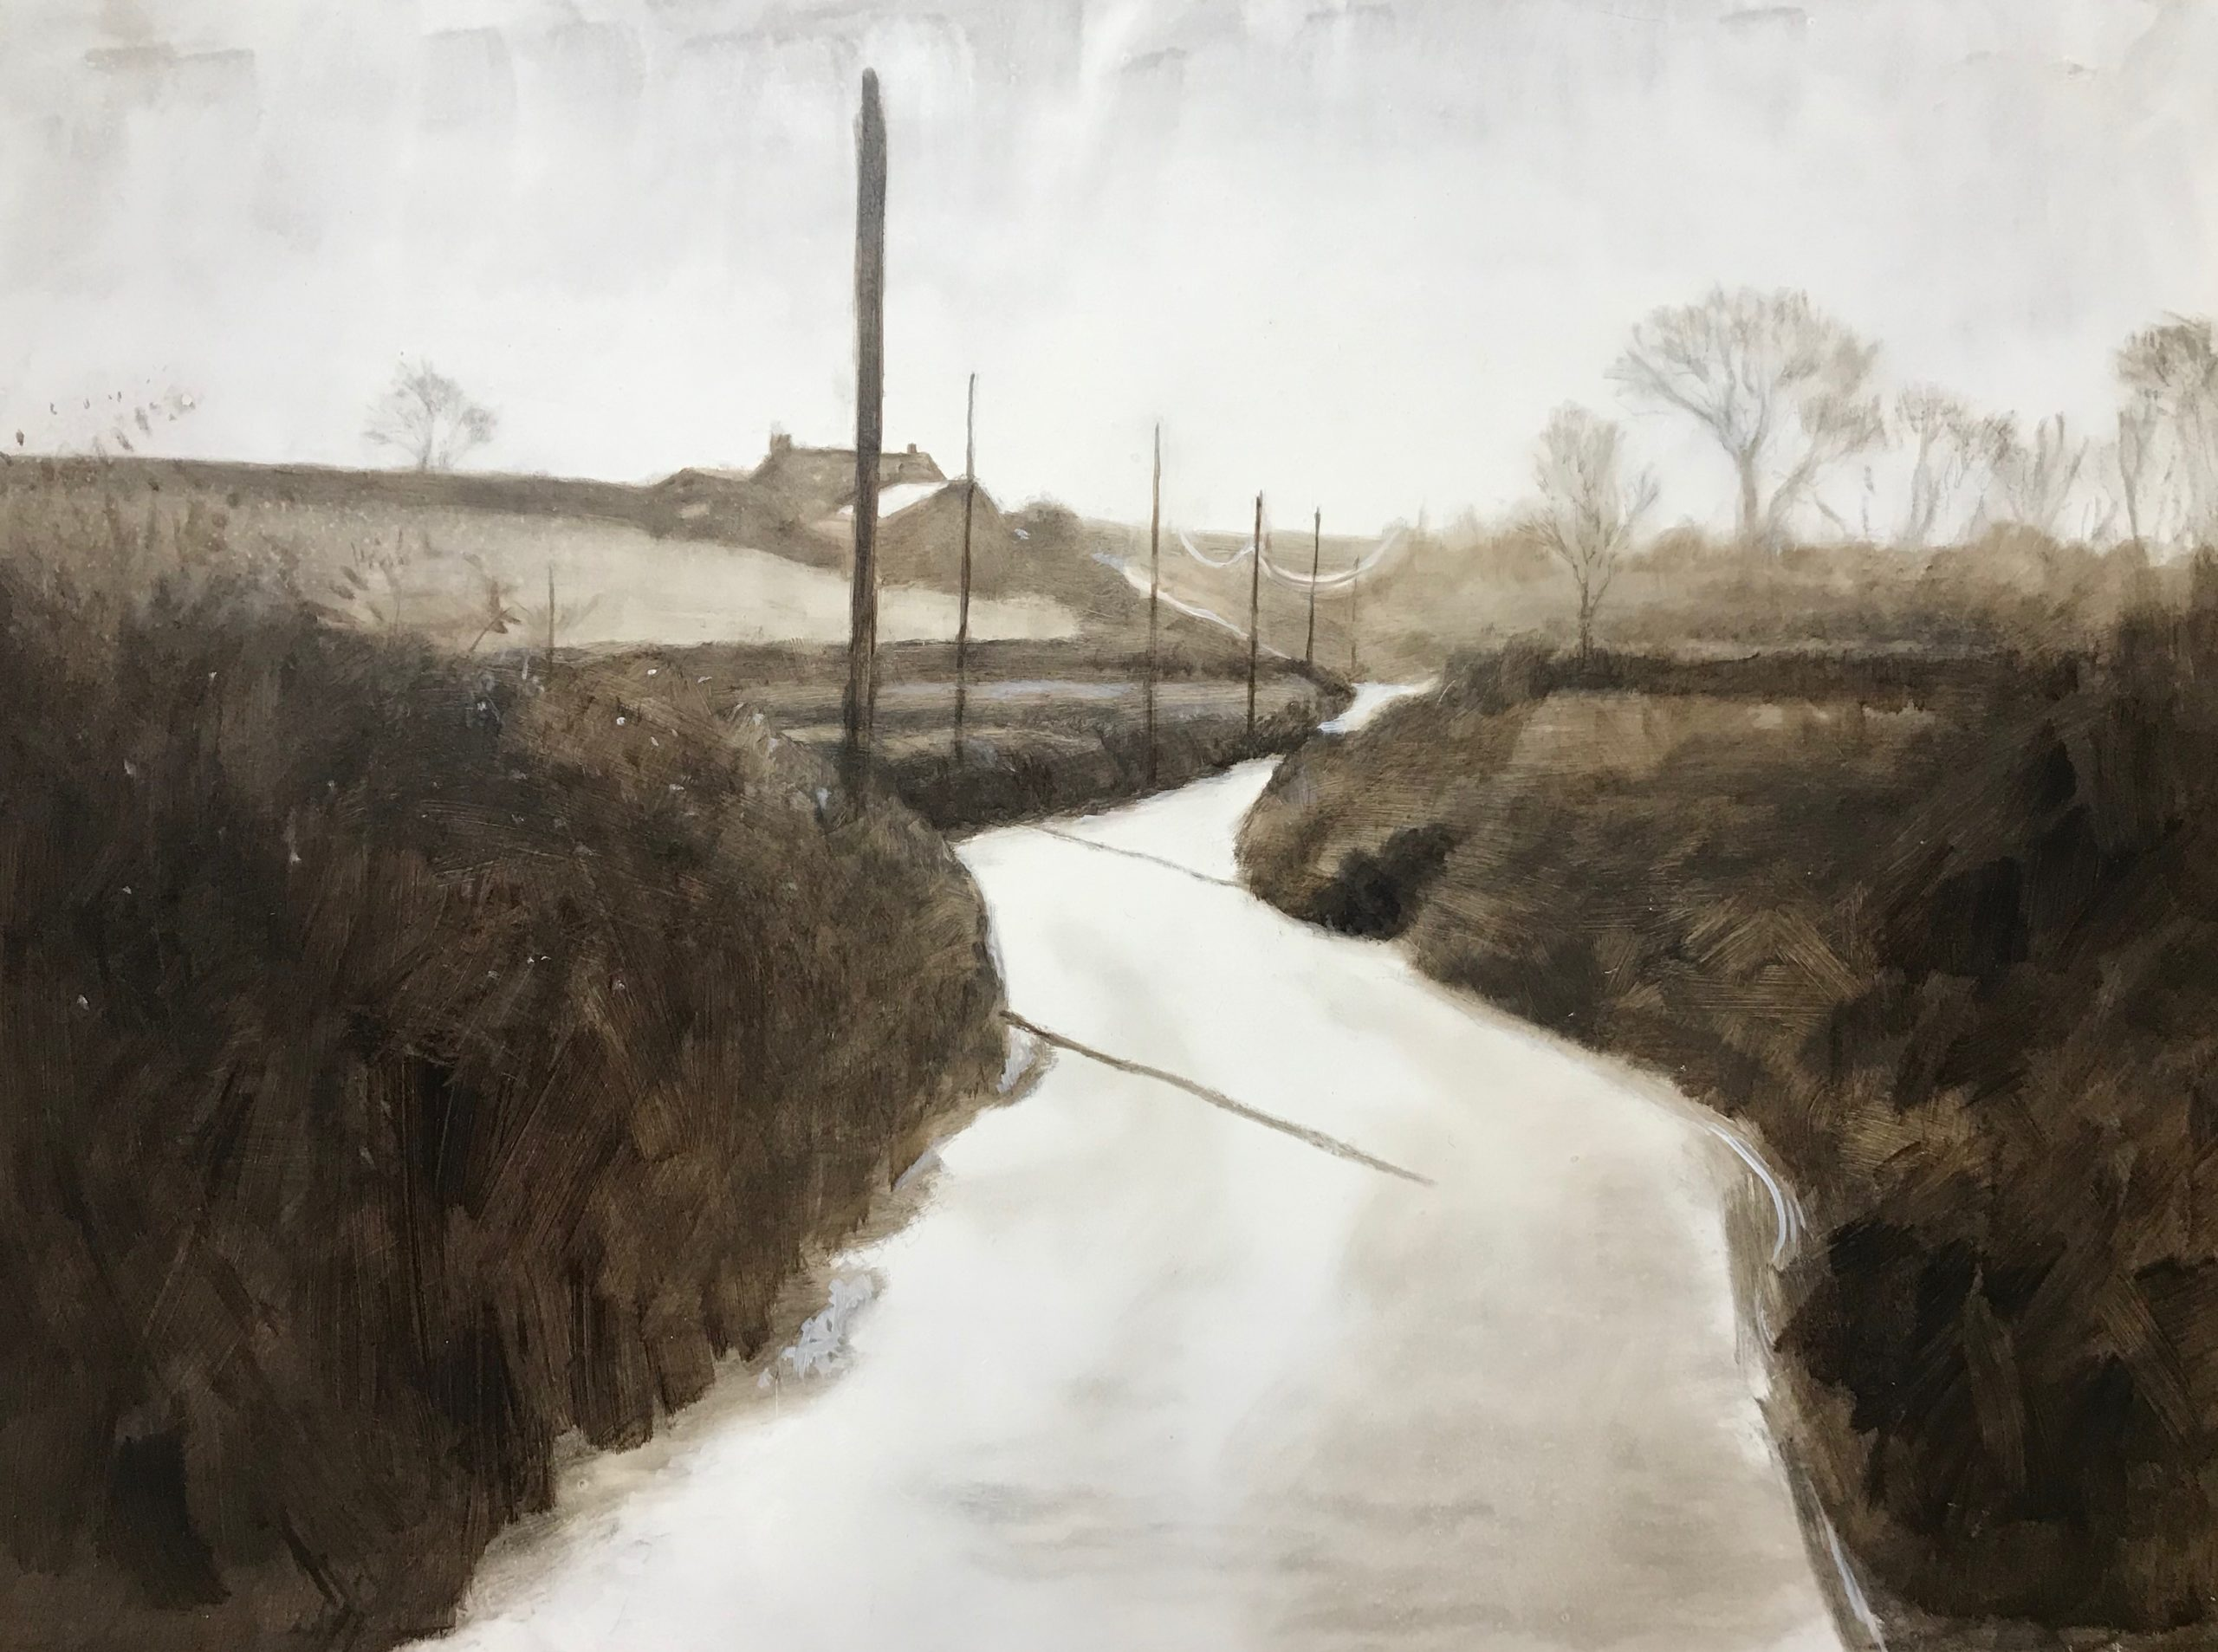 <br><em>Back road to Salcombe</em>, 2019<br>Greg Ramsden<br>Oil on panel, 30 x 40 cm